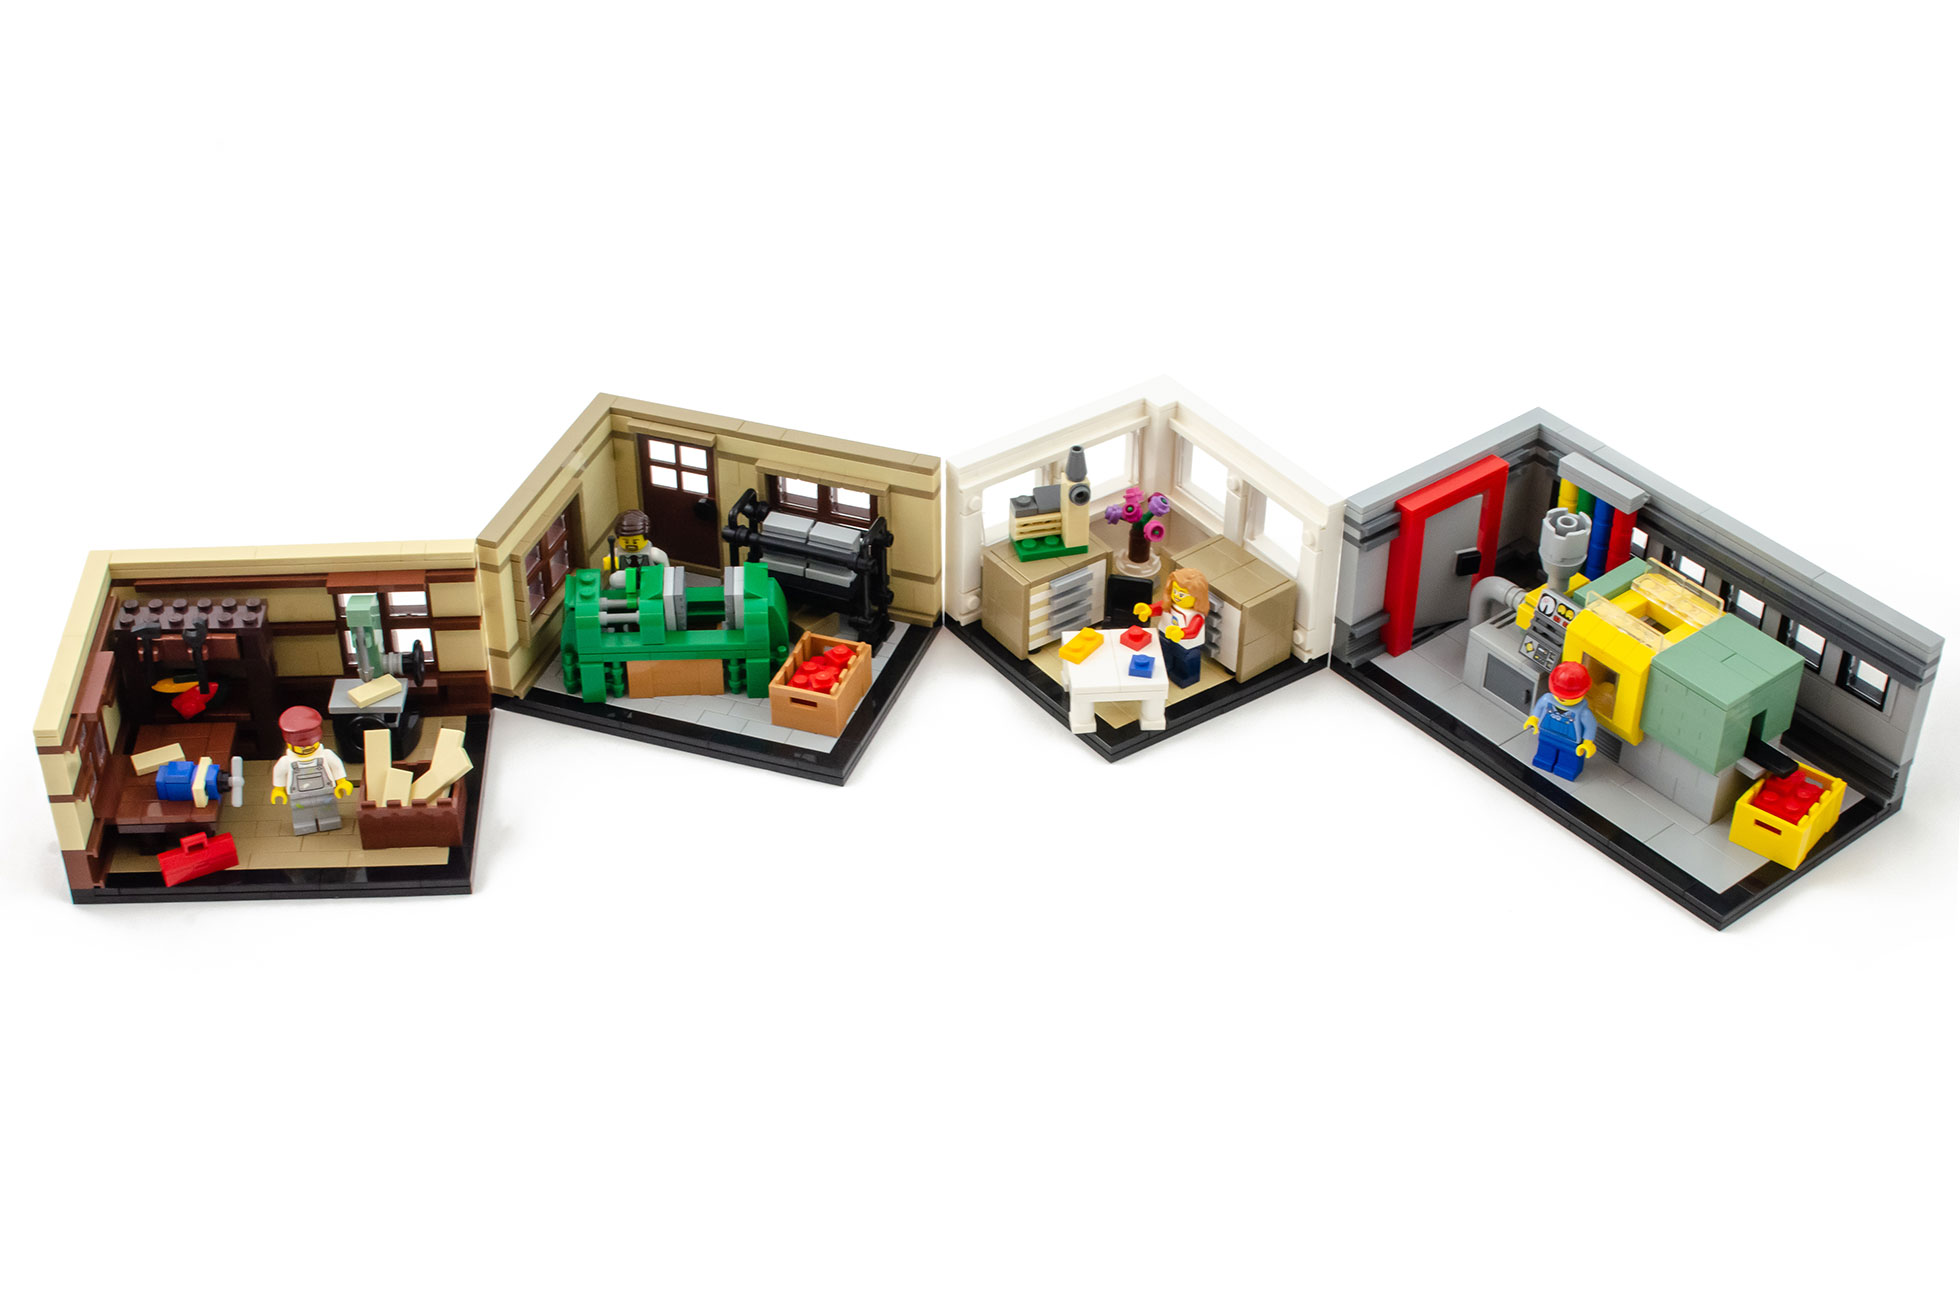 Canapé Conforama Axel Bricklink Buy And Sell Lego Parts Sets And Minifigures